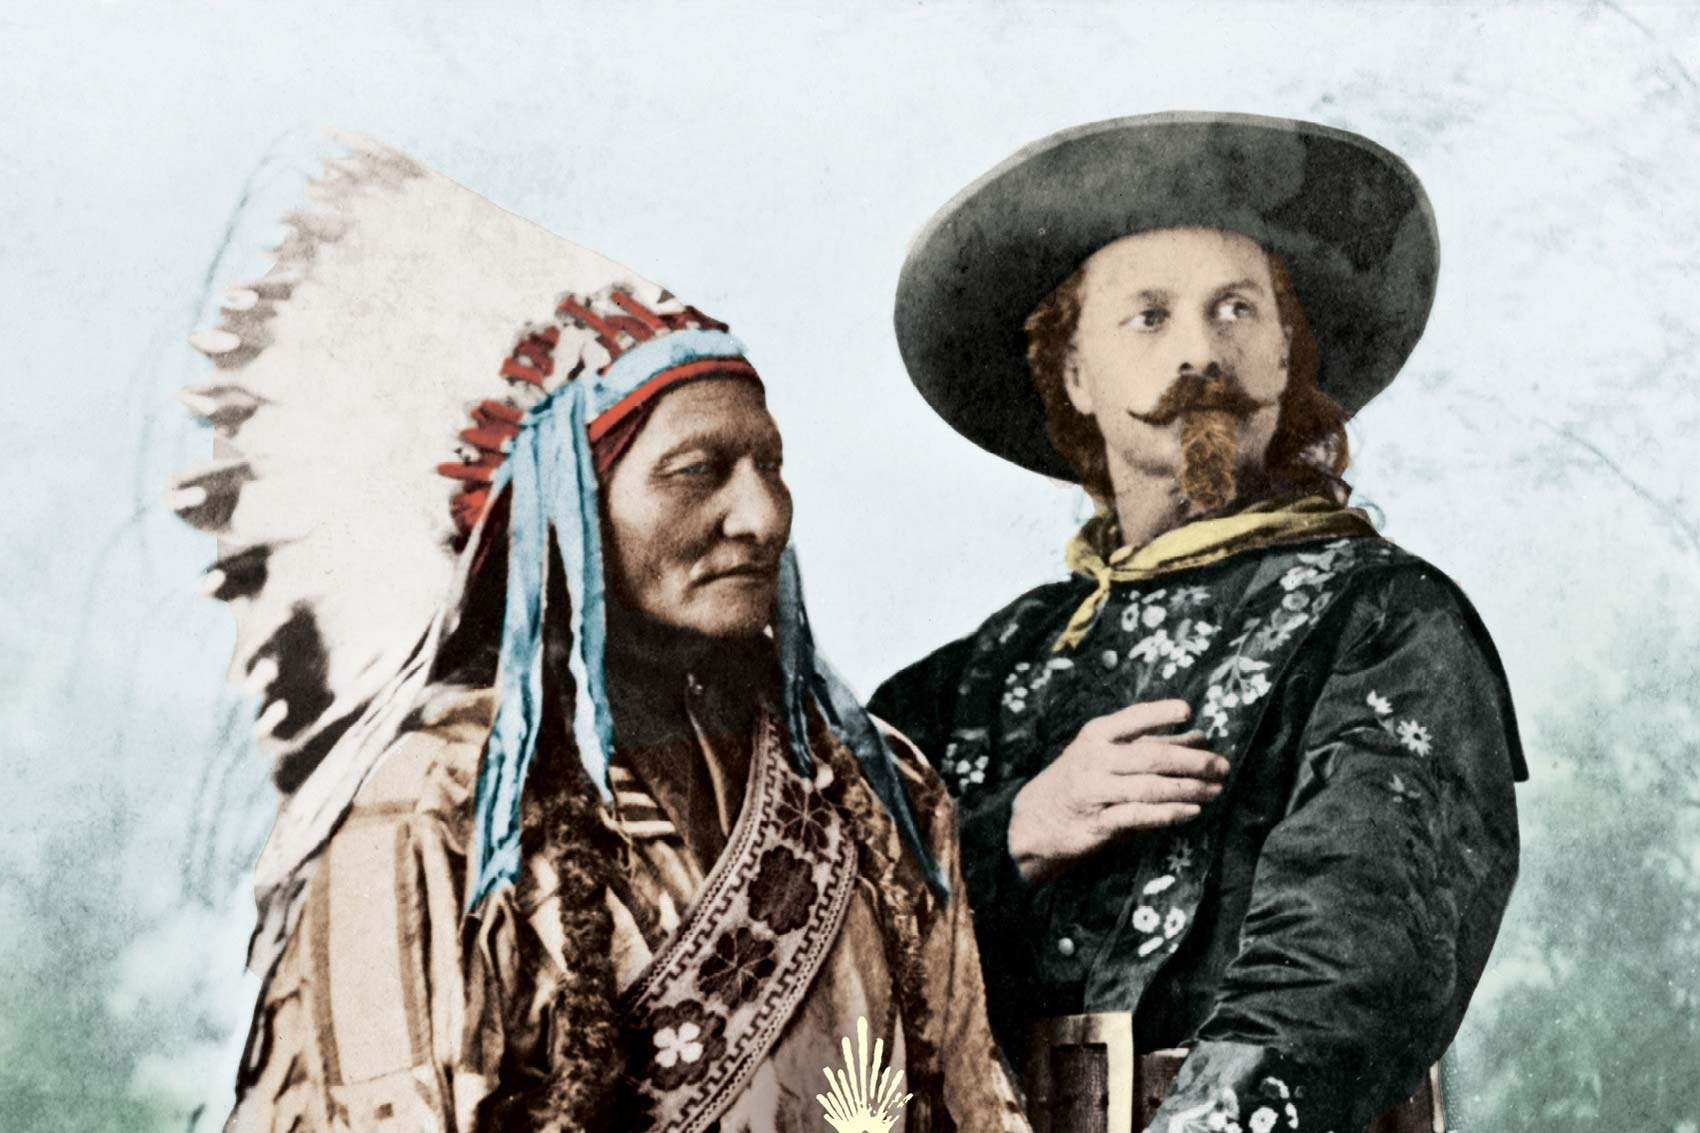 The Strange Friendship Of Wild West Icons Sitting Bull And